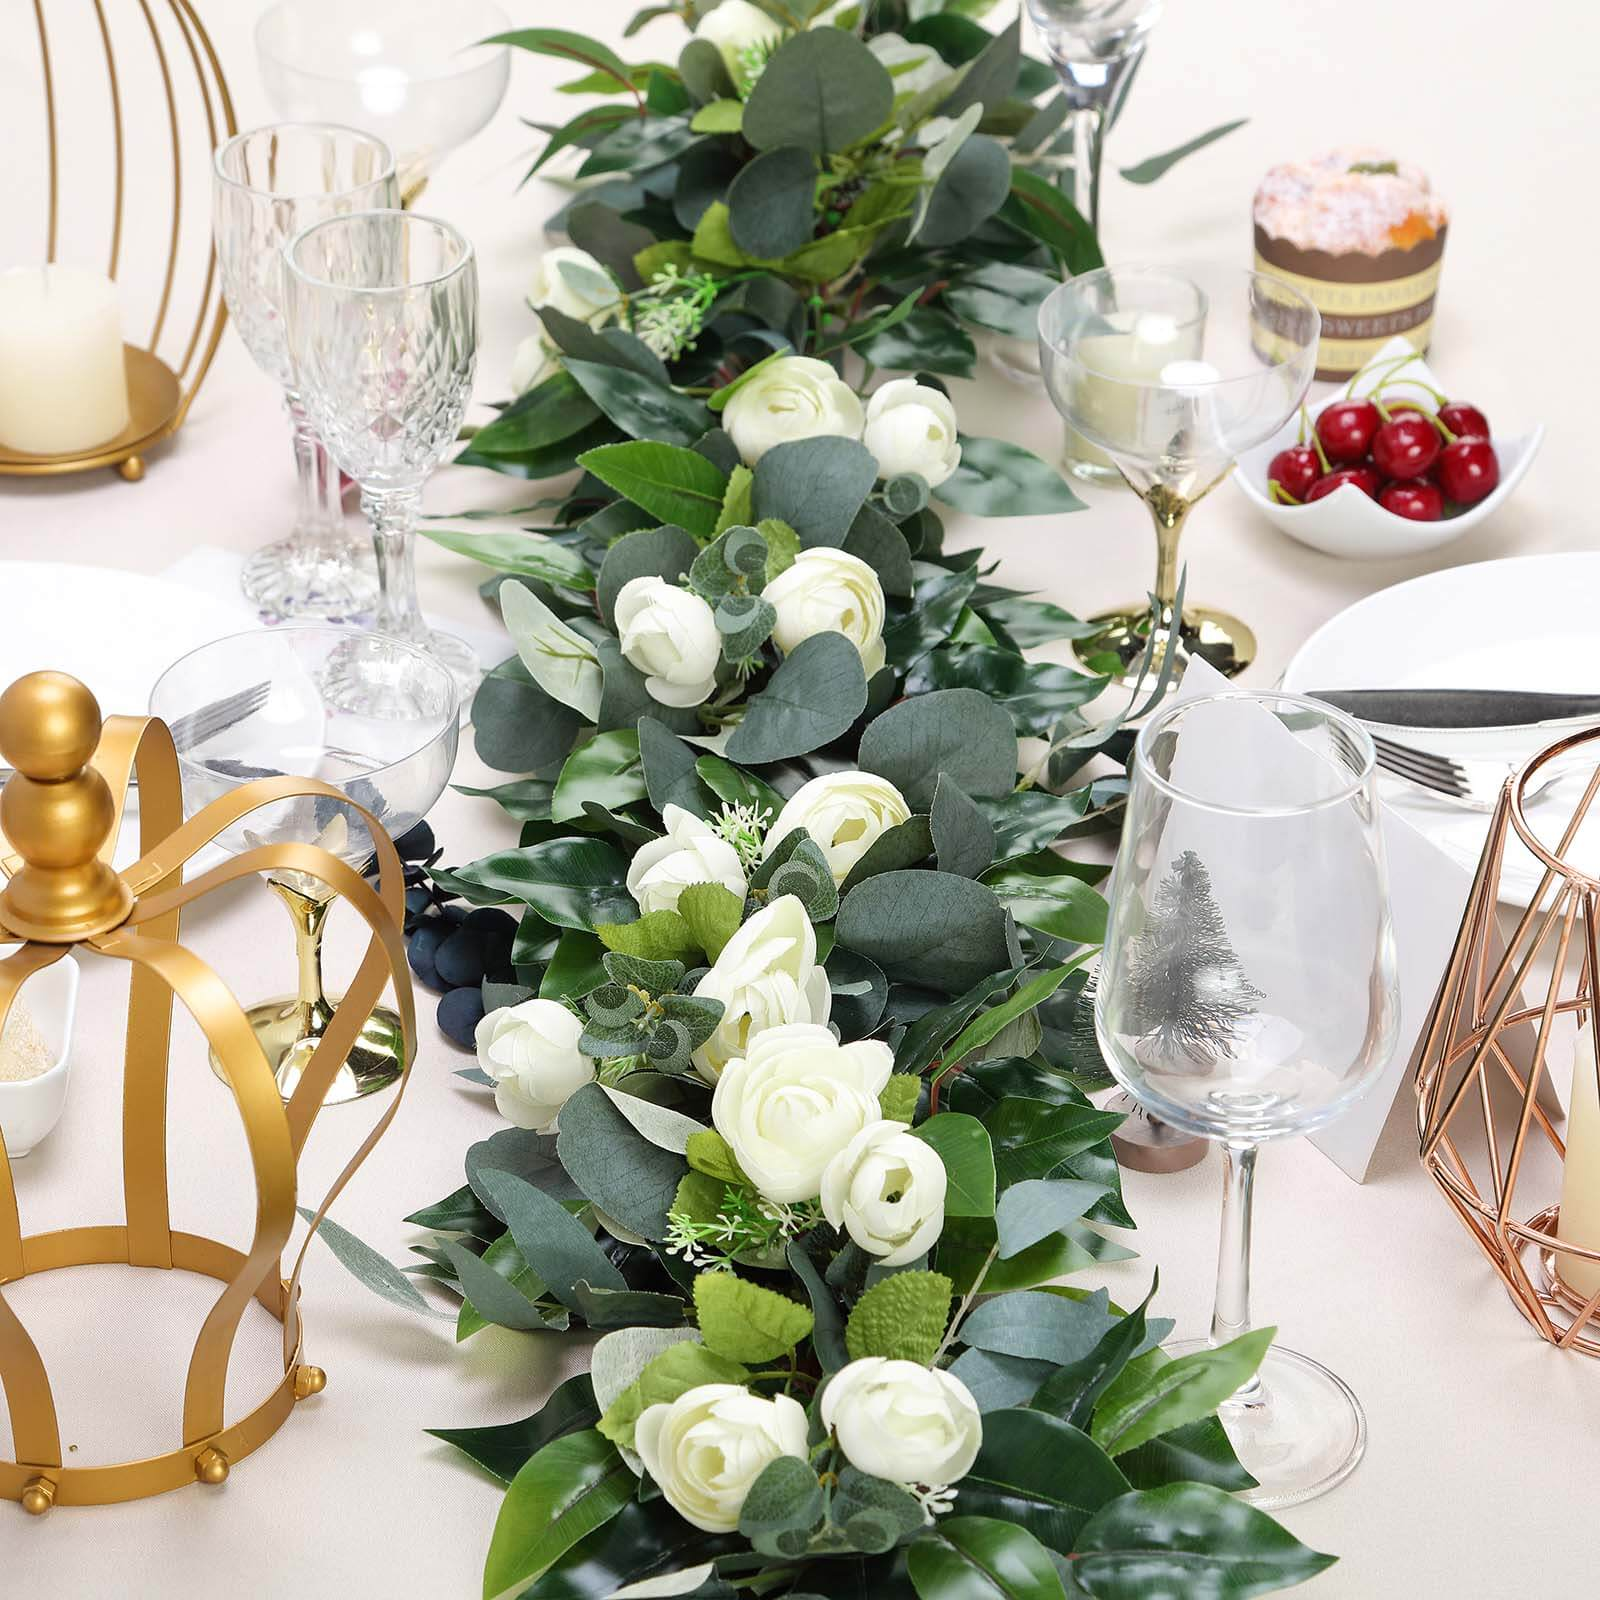 4 Ft Real Touch Green Eucalyptus Willow Leaves Garland With Ranunculus Flowers Efavormart